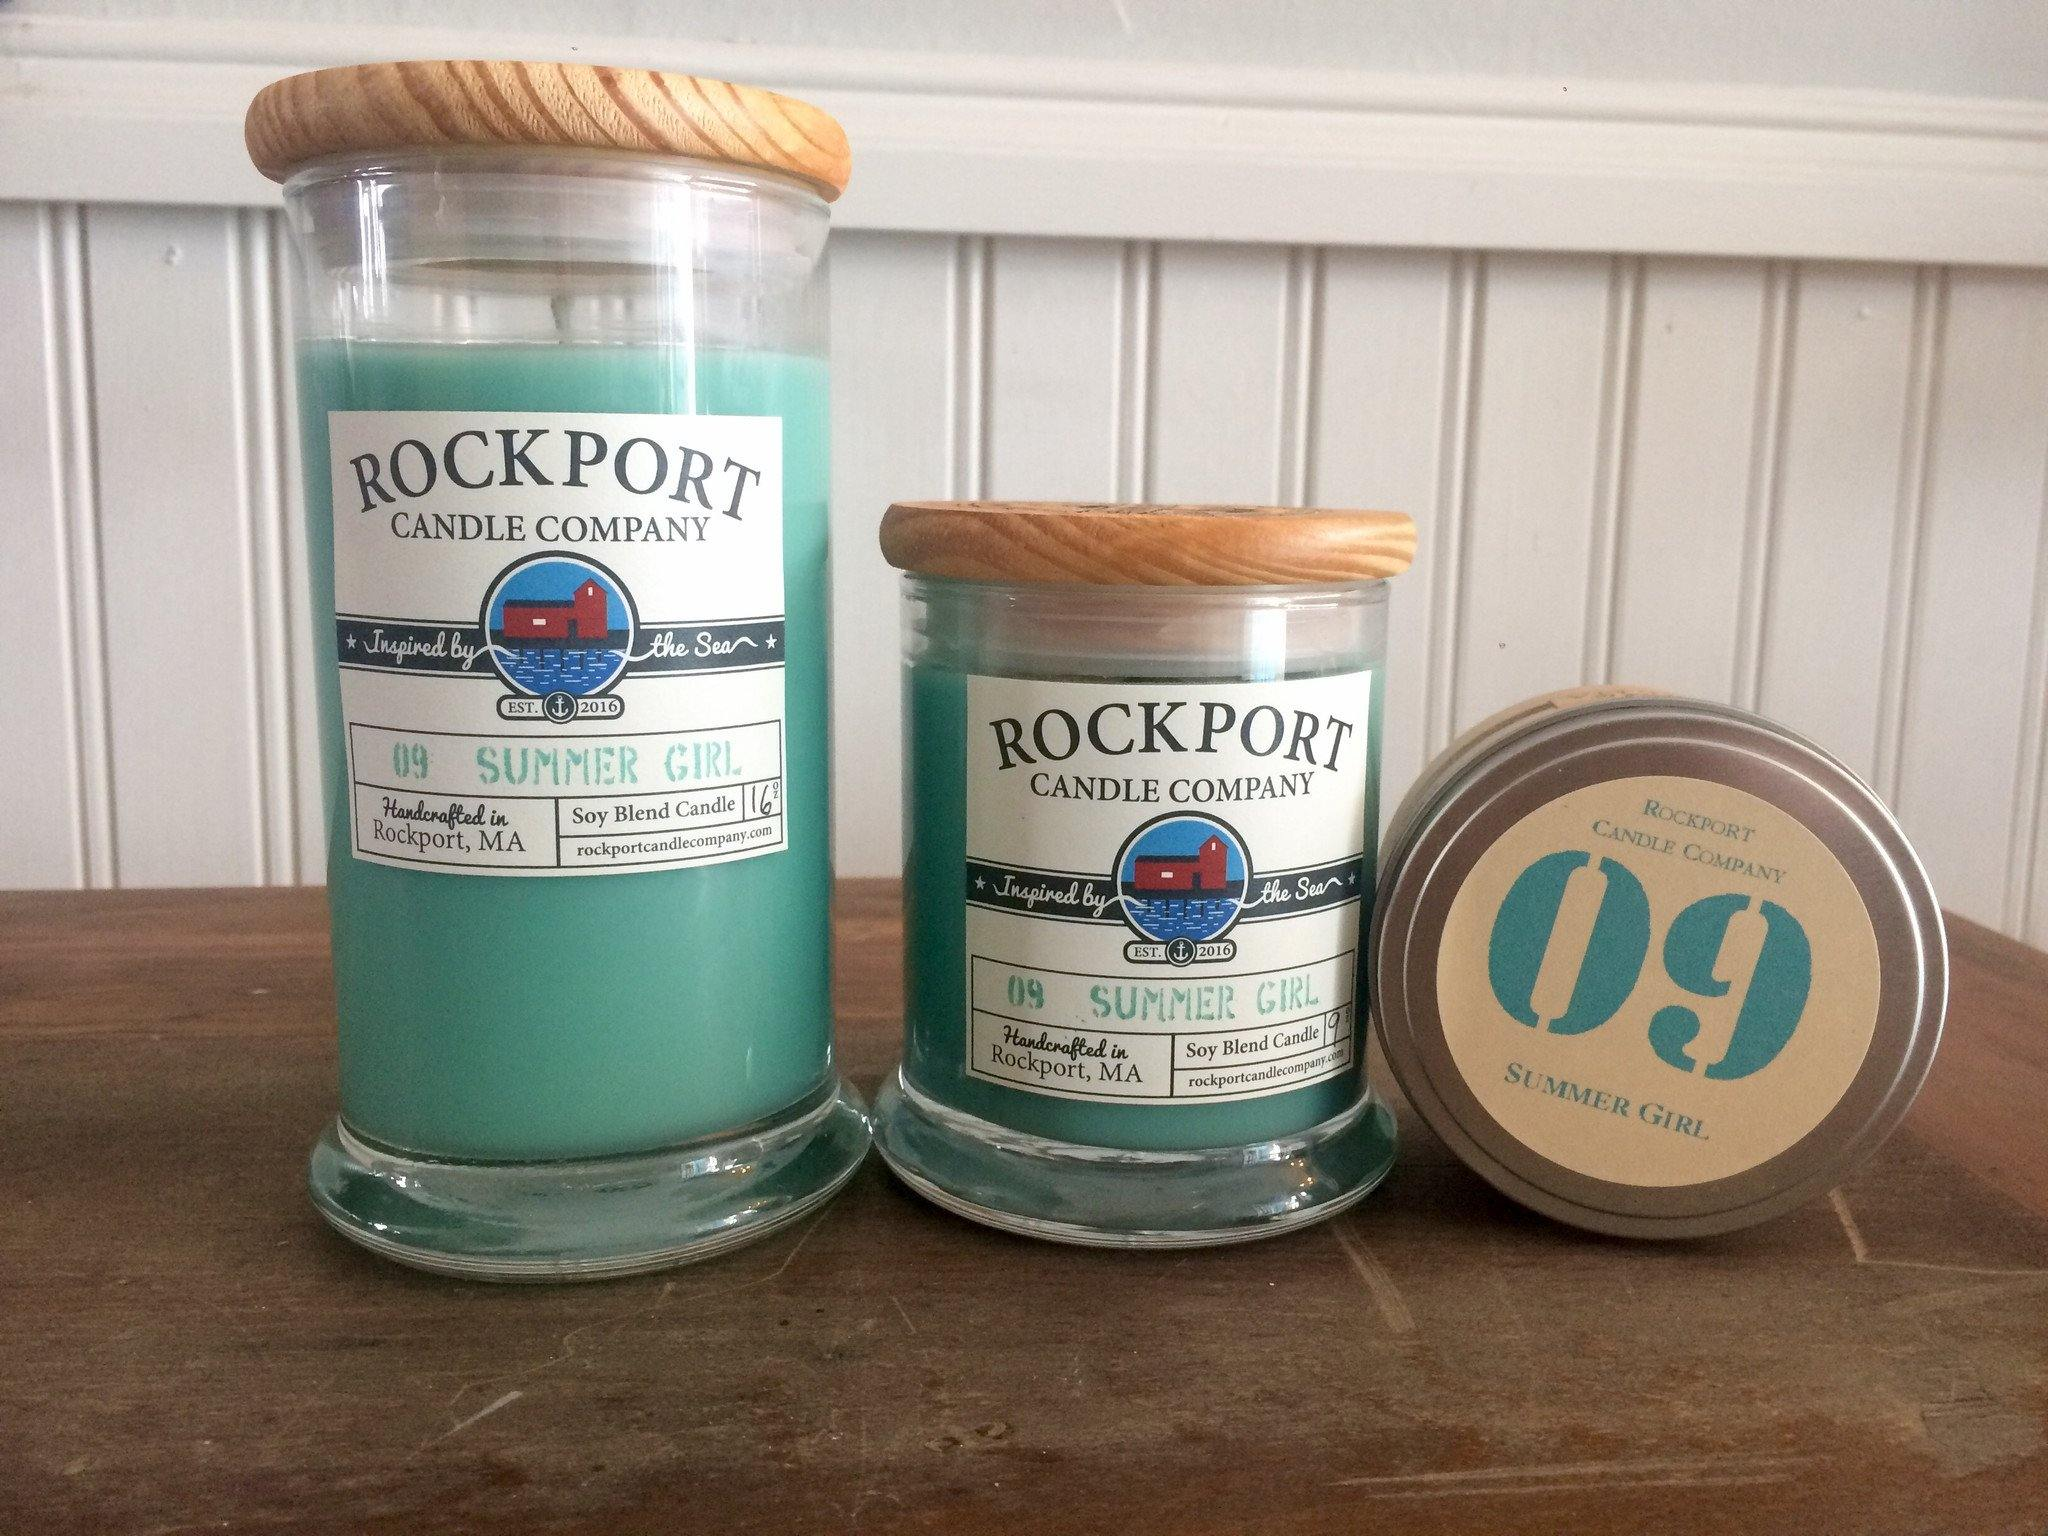 Summer Girl Beach Rockport Candle Company 09